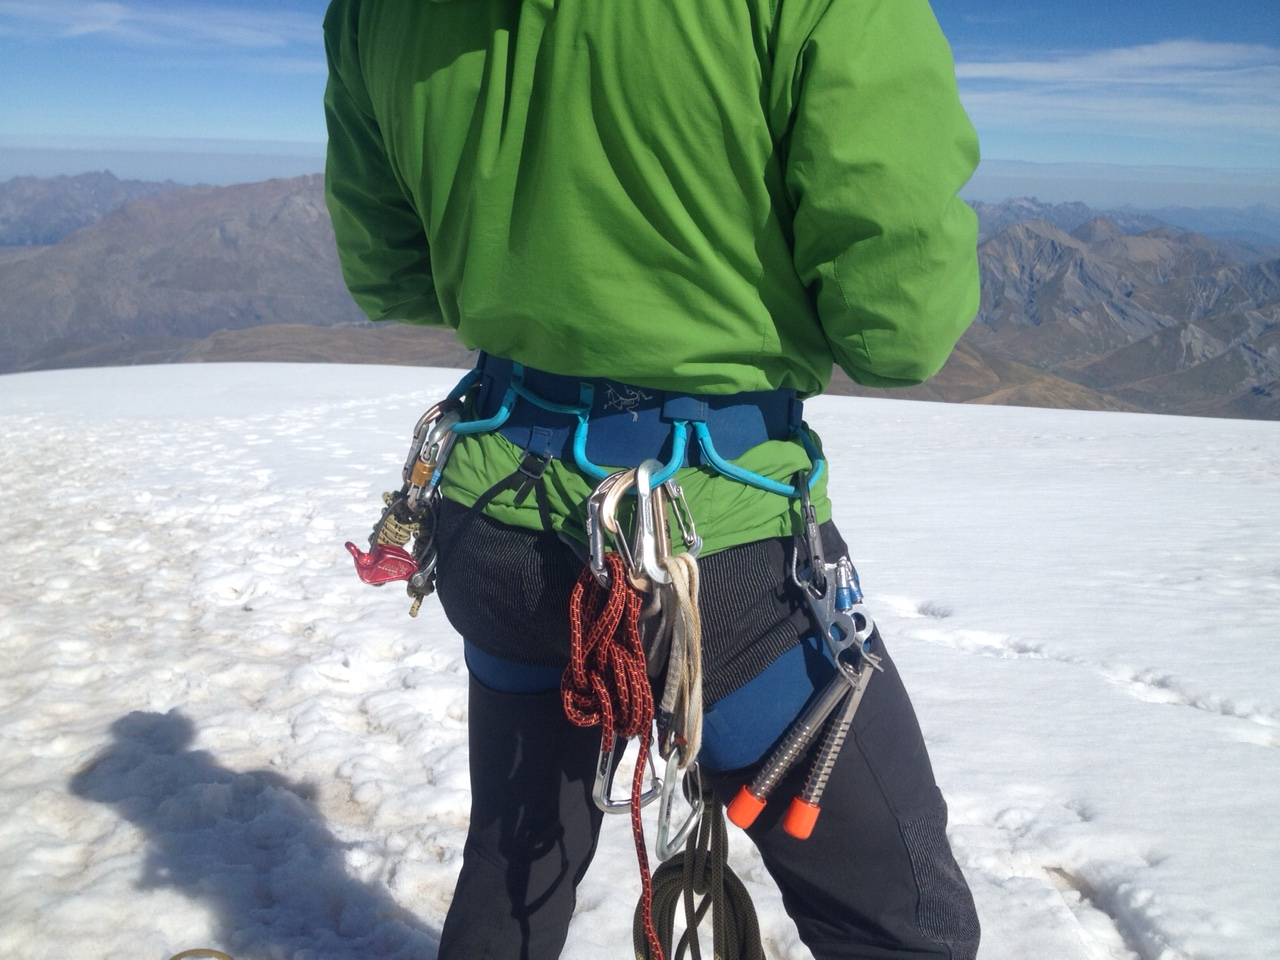 Klettergurt Arcteryx Ar 395a : Arc teryx ar a harness review climbing gear reviews